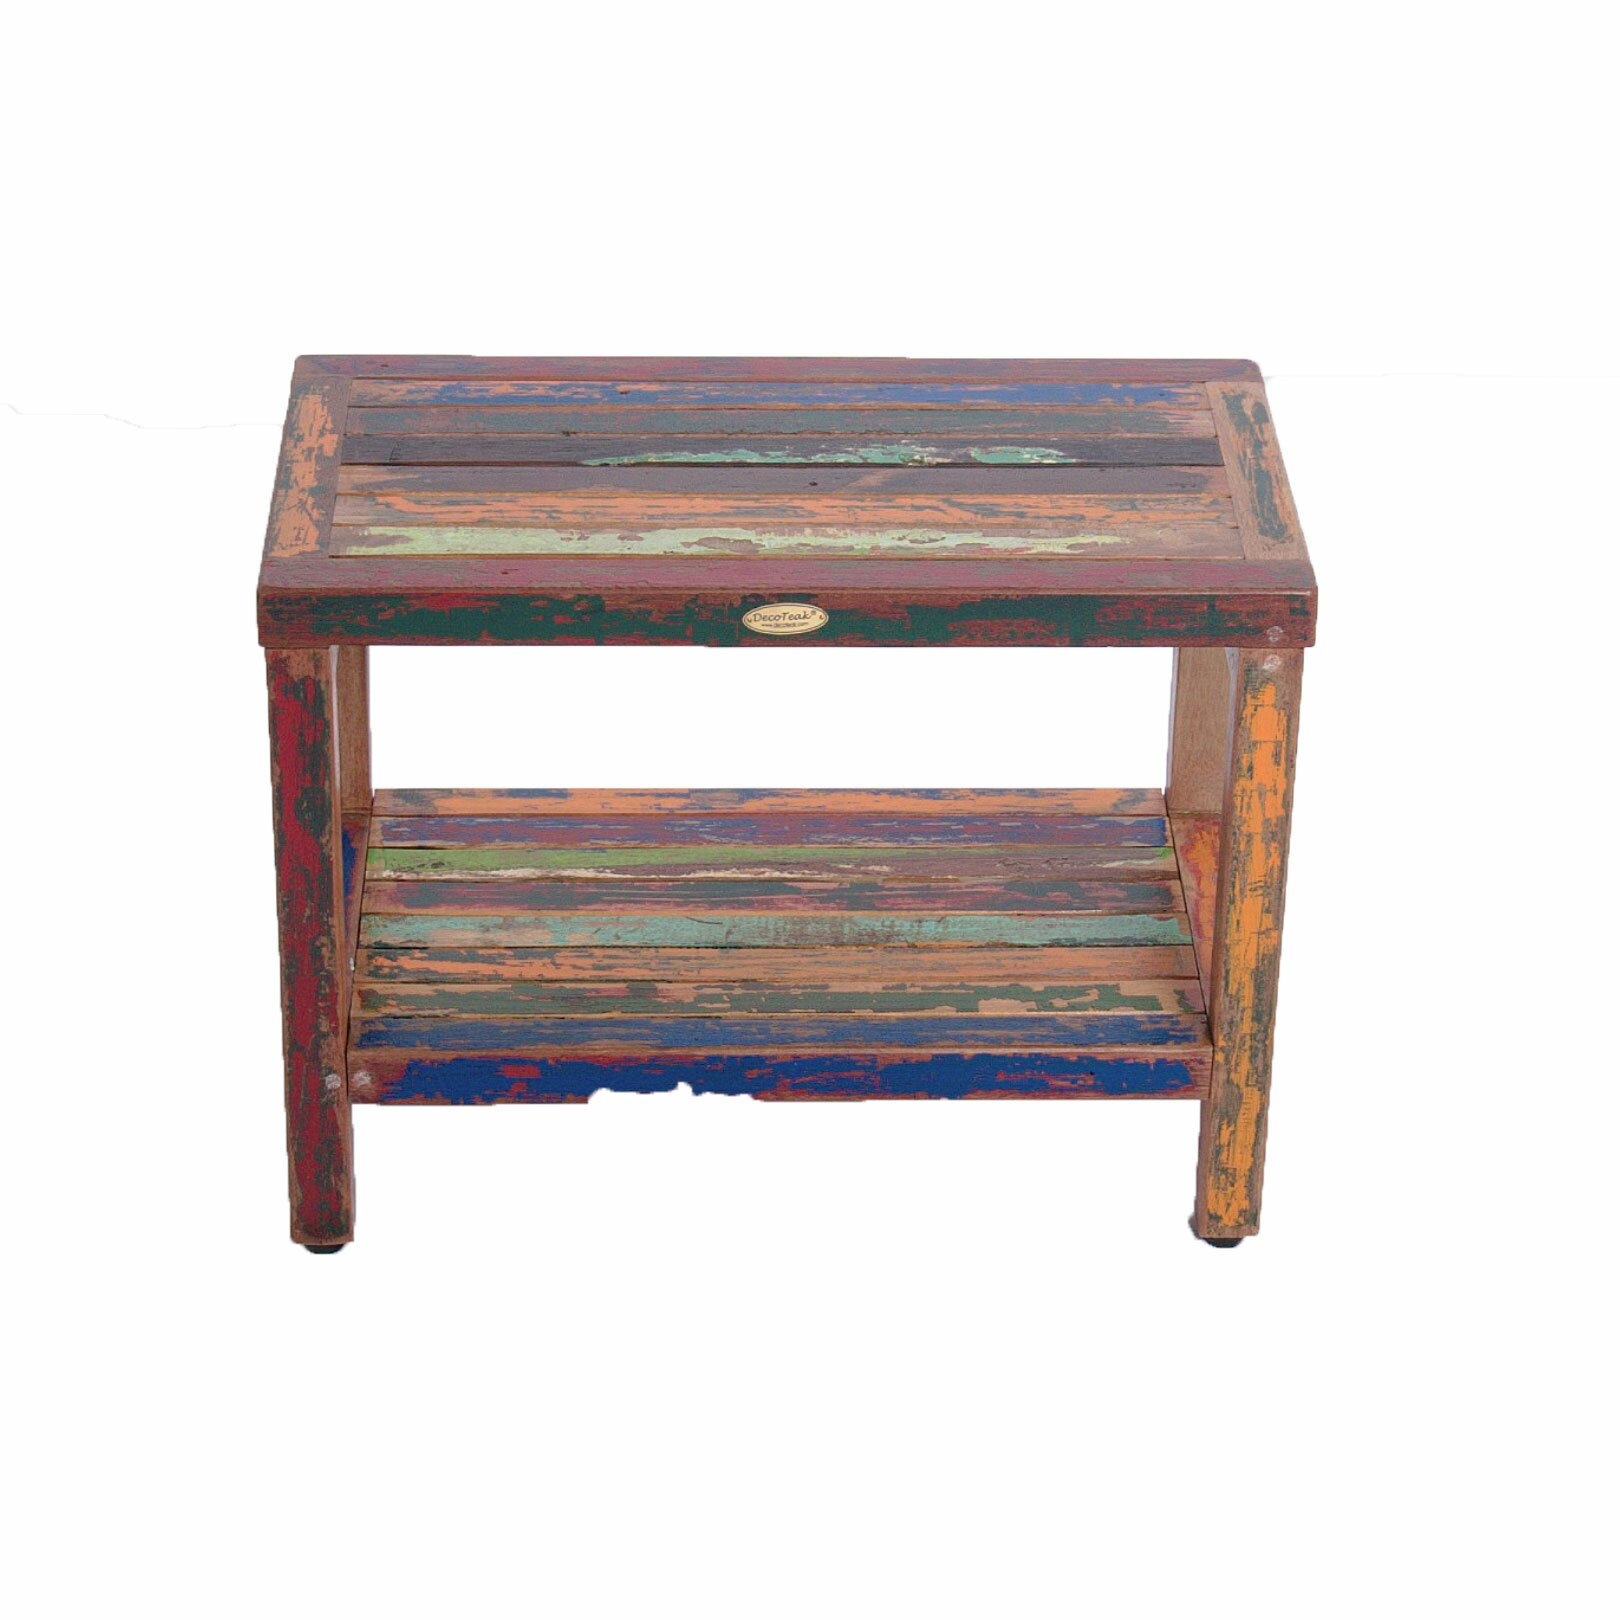 Ecodecors Recycled Salvaged Reclaimed Boat Wood Garden Bench Reviews Wayfair